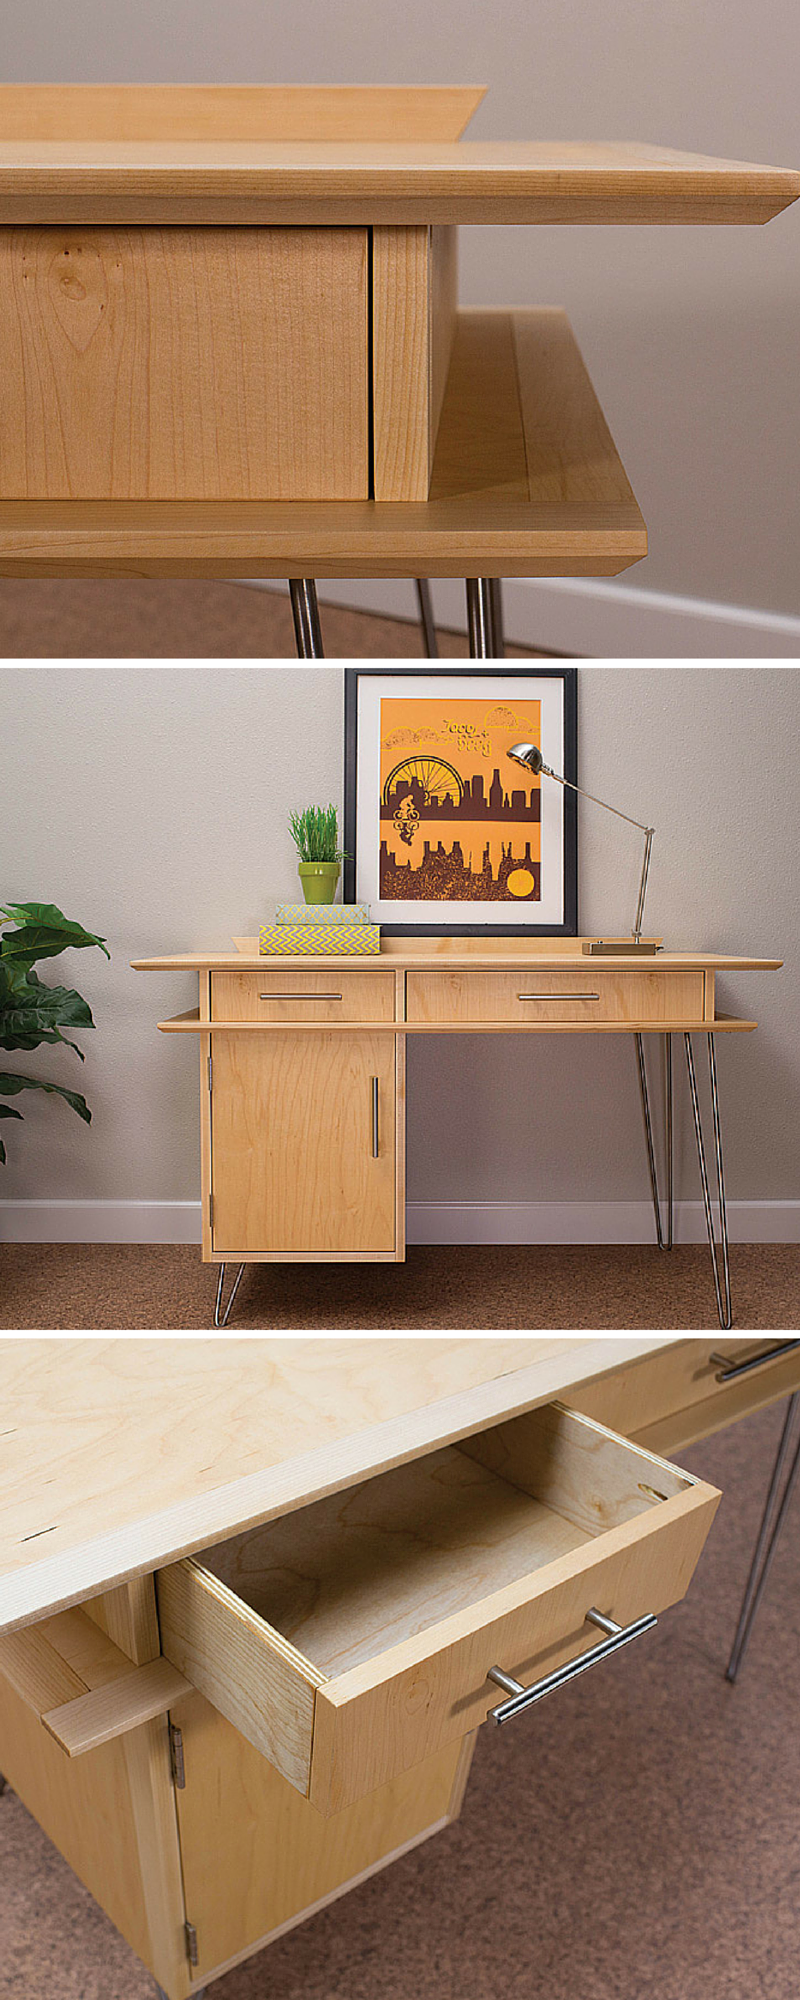 This Desk Perfectly Captures The Spirit Of Mid Century Modern With Its Naturally Finished Maple Wood Stai Mid Century Desk Mid Century Modern Desk Modern Desk